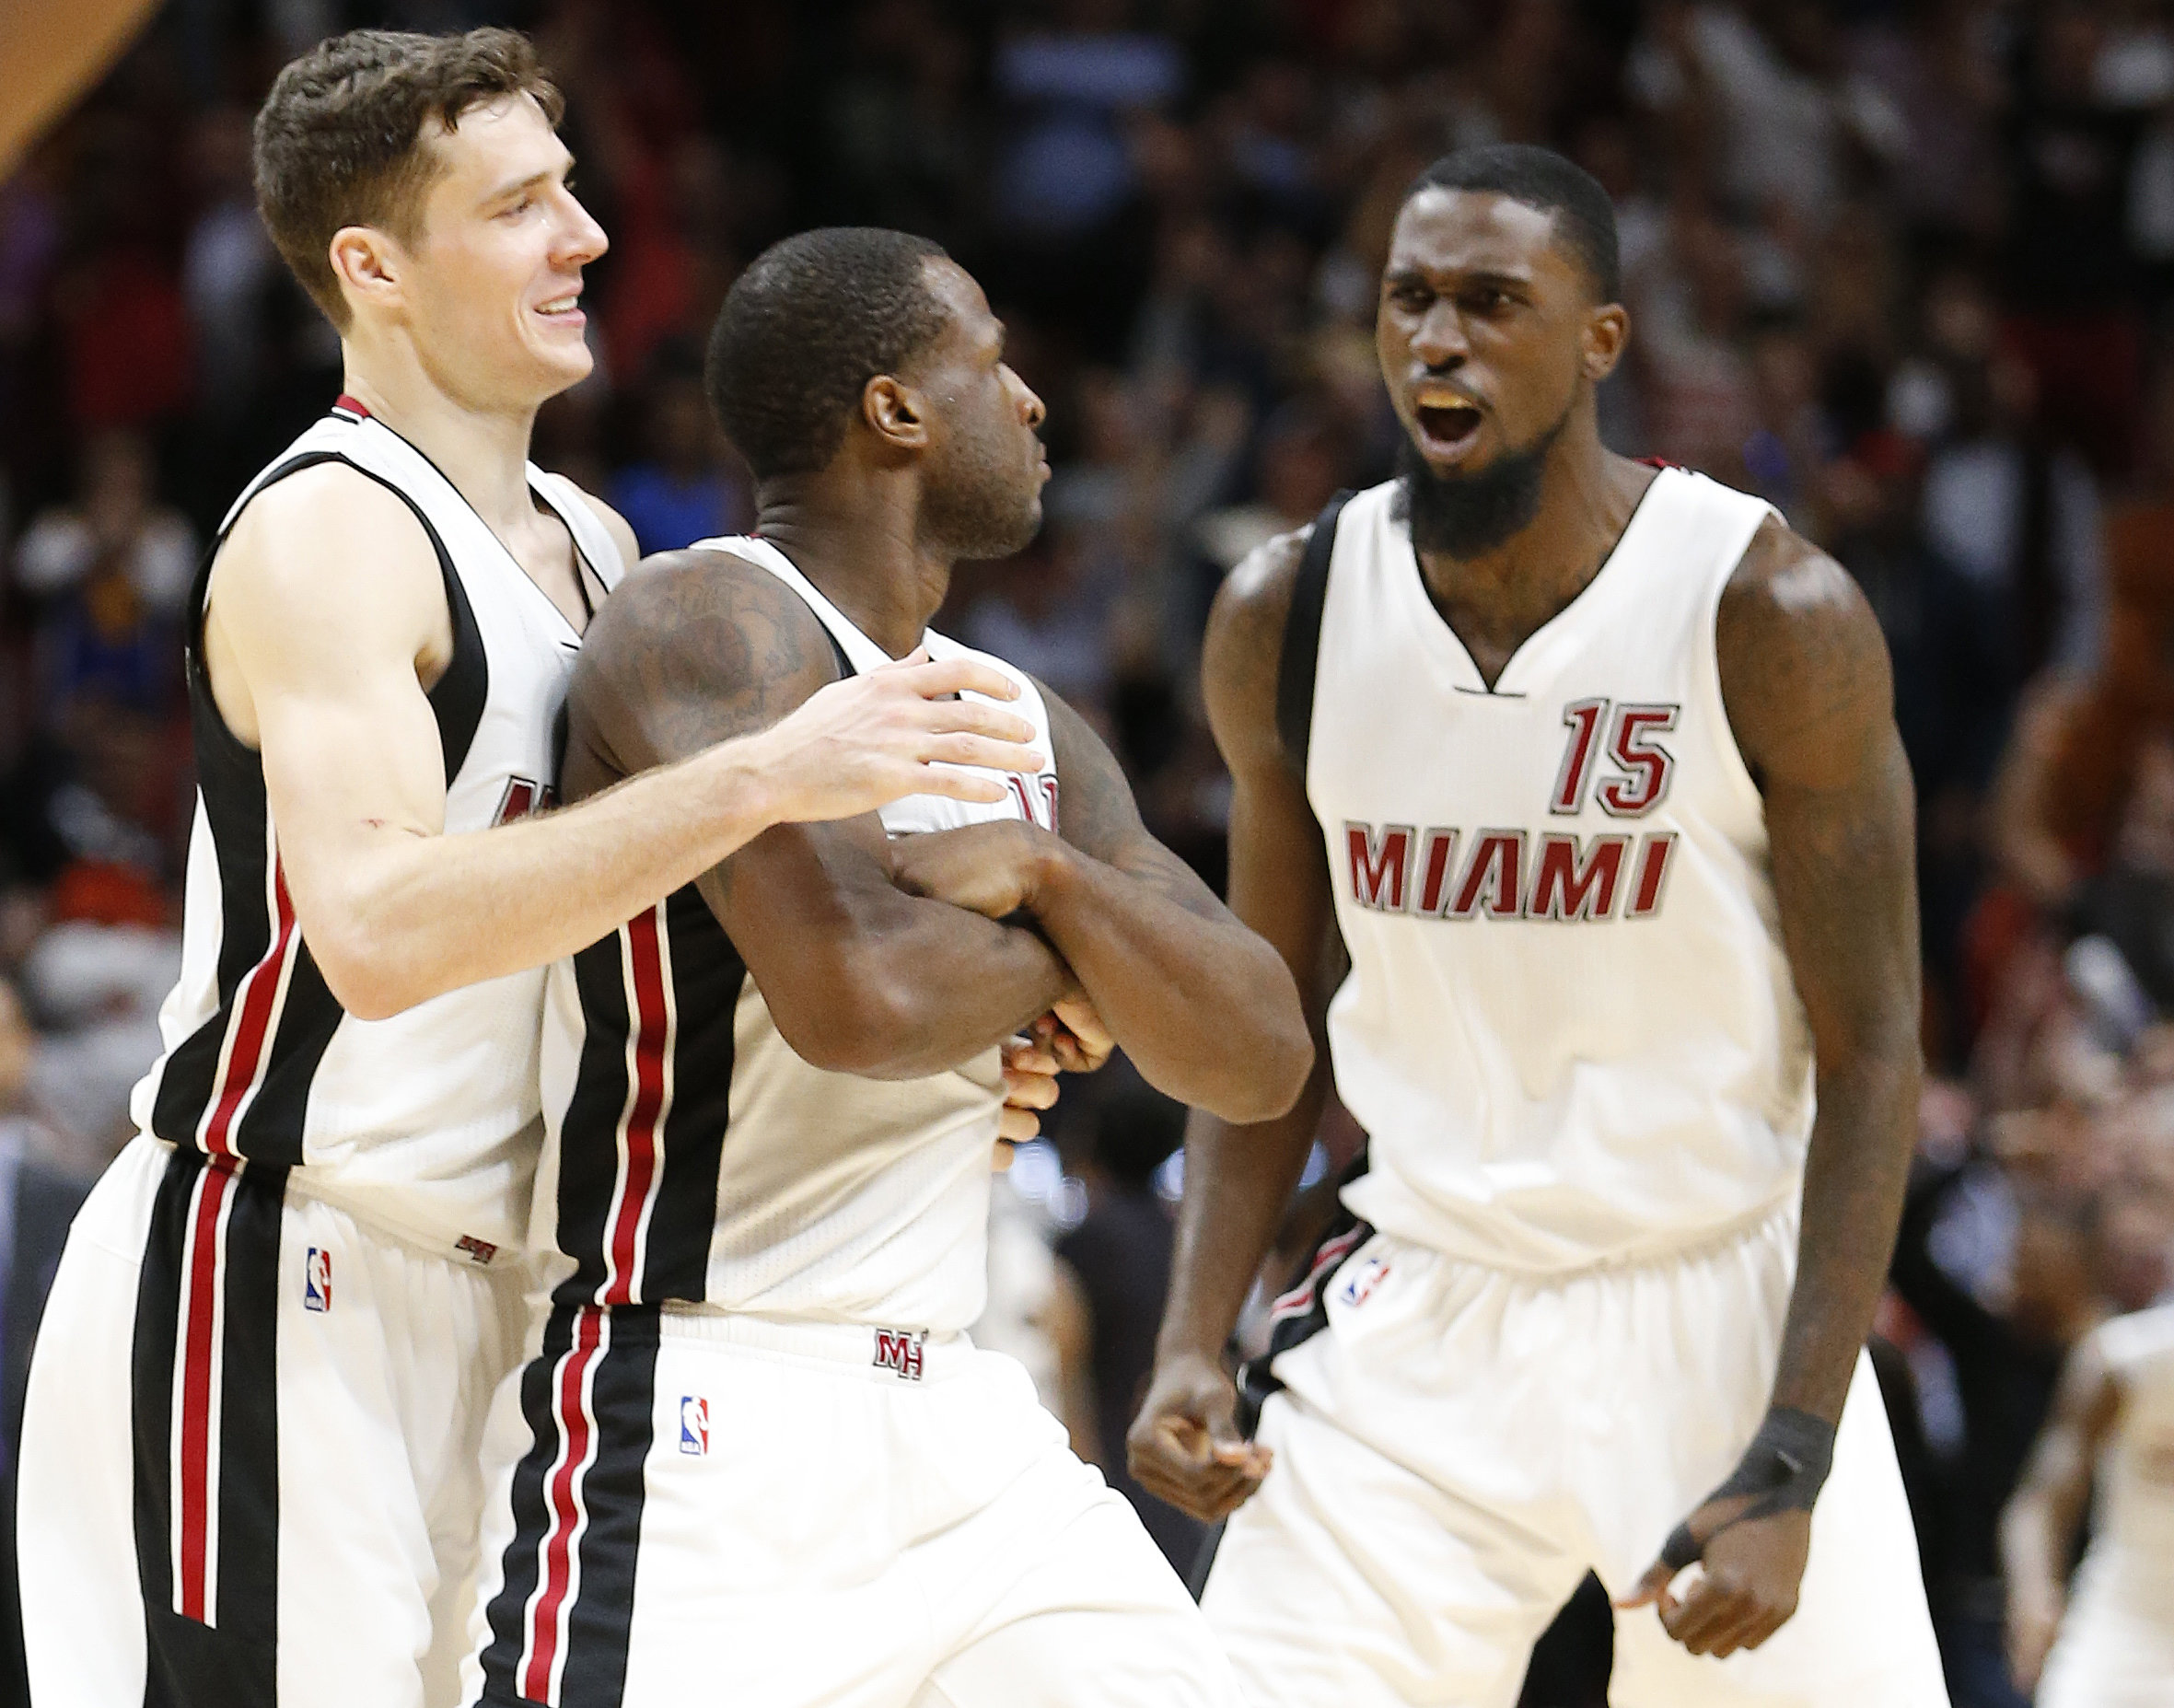 Miami Heat | Fuente: Heat Zone